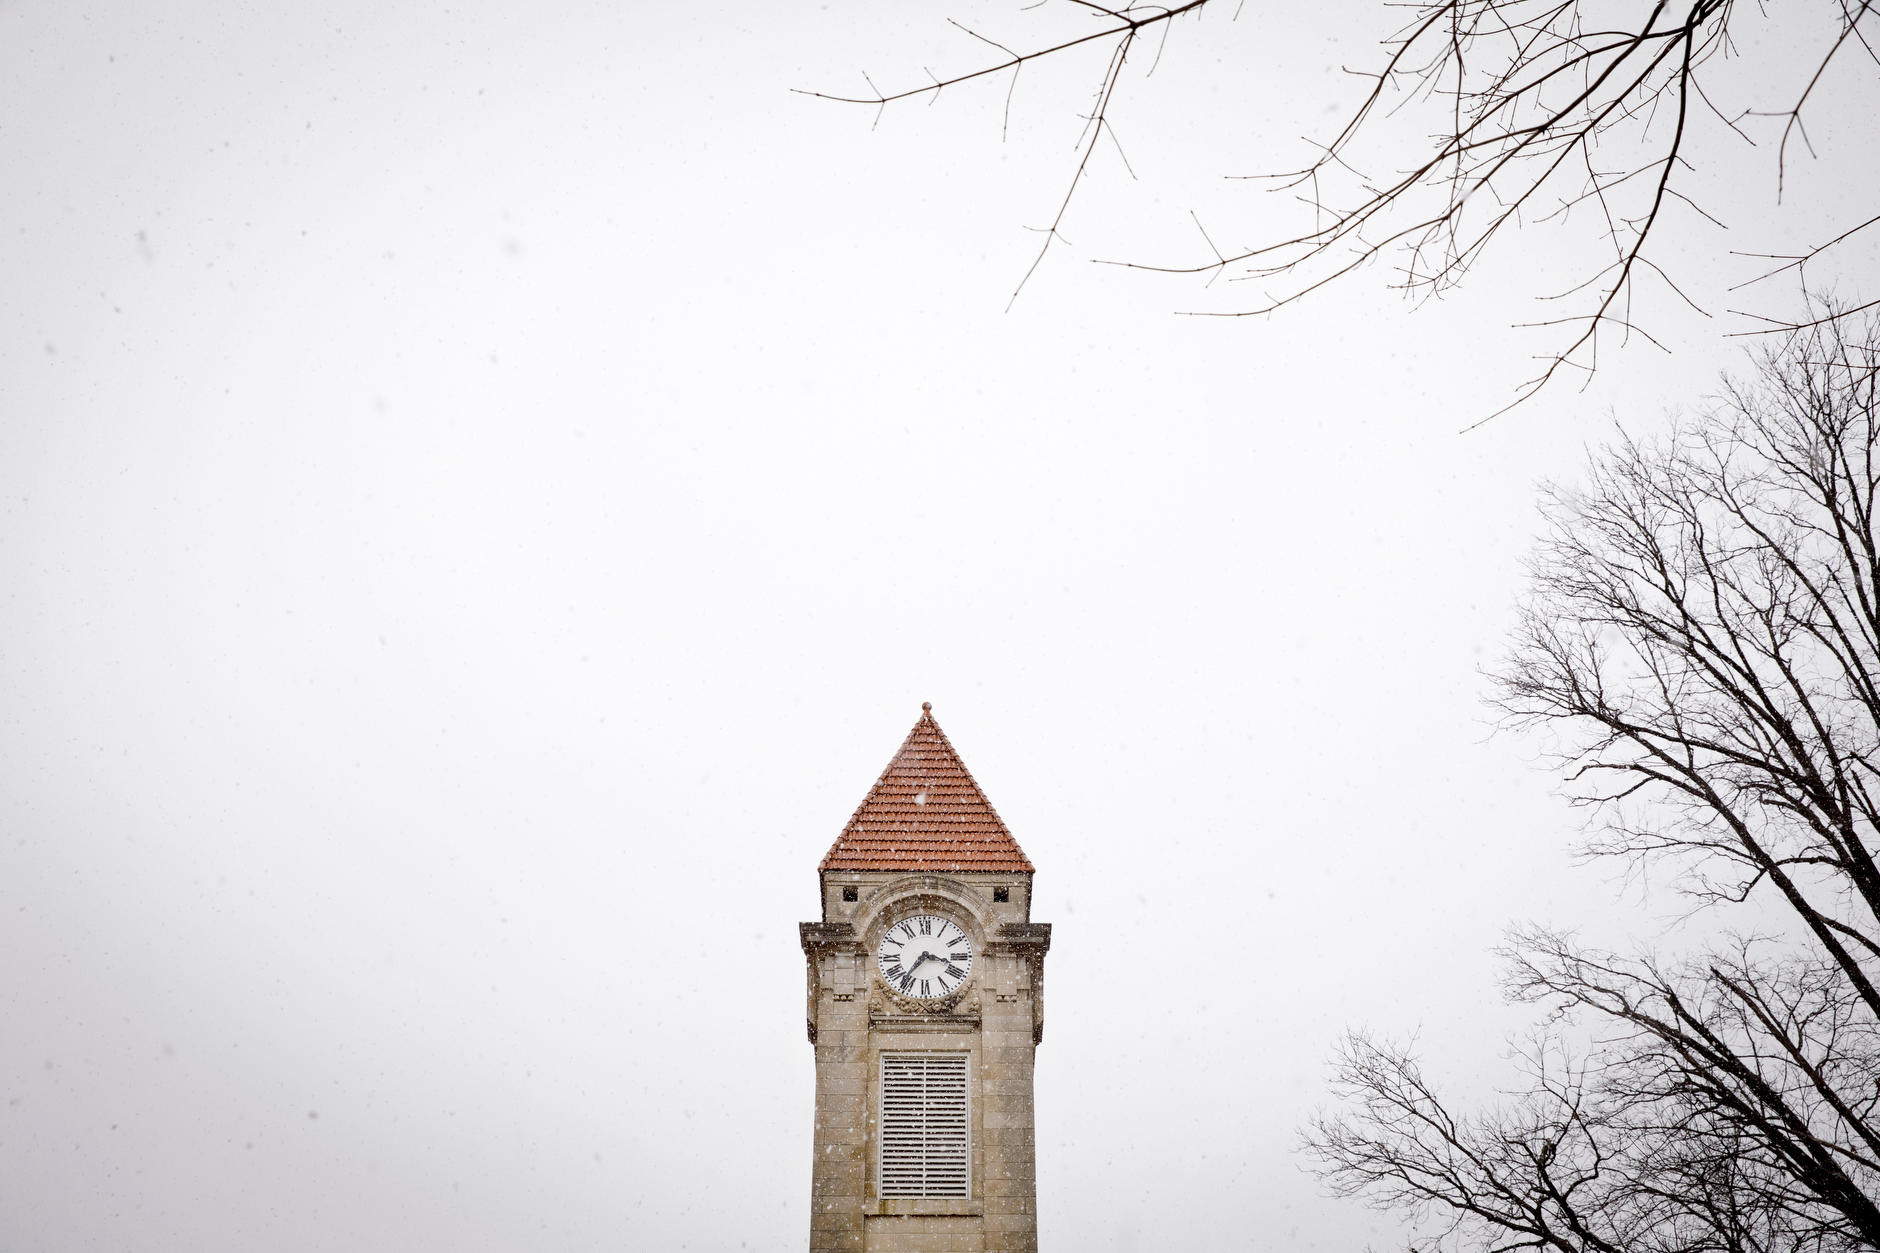 Snow falls in front of the Student Building tower at IU Bloomington on Thursday, March 7, 2019. (James Brosher/Indiana University)